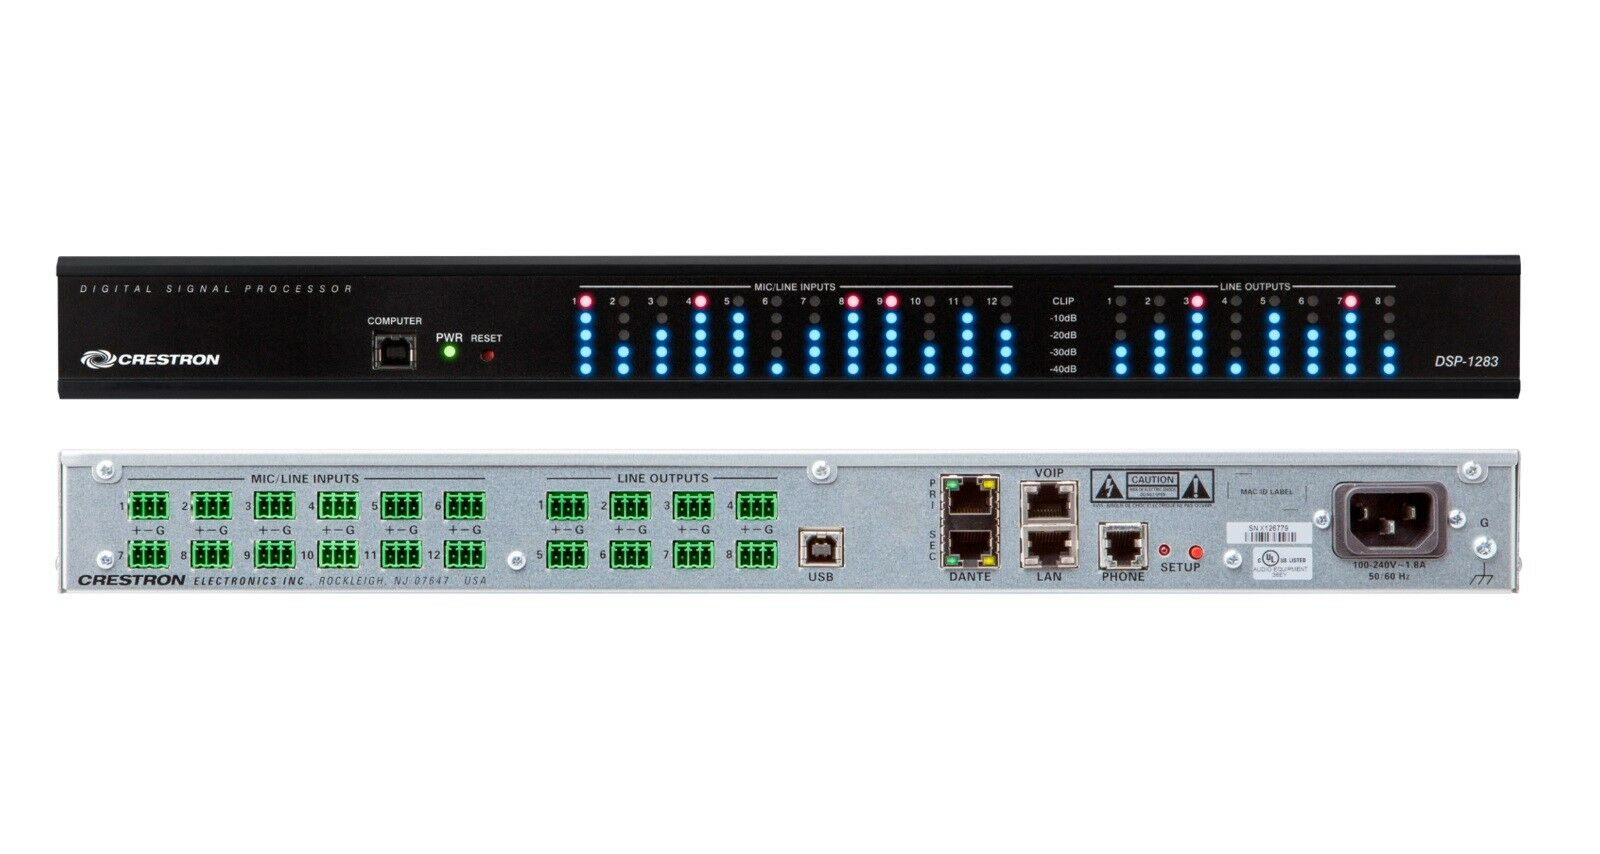 Crestron DSP-1283 Avia 12x8 Digital Signal Processor Dante Audio Matrix AEC